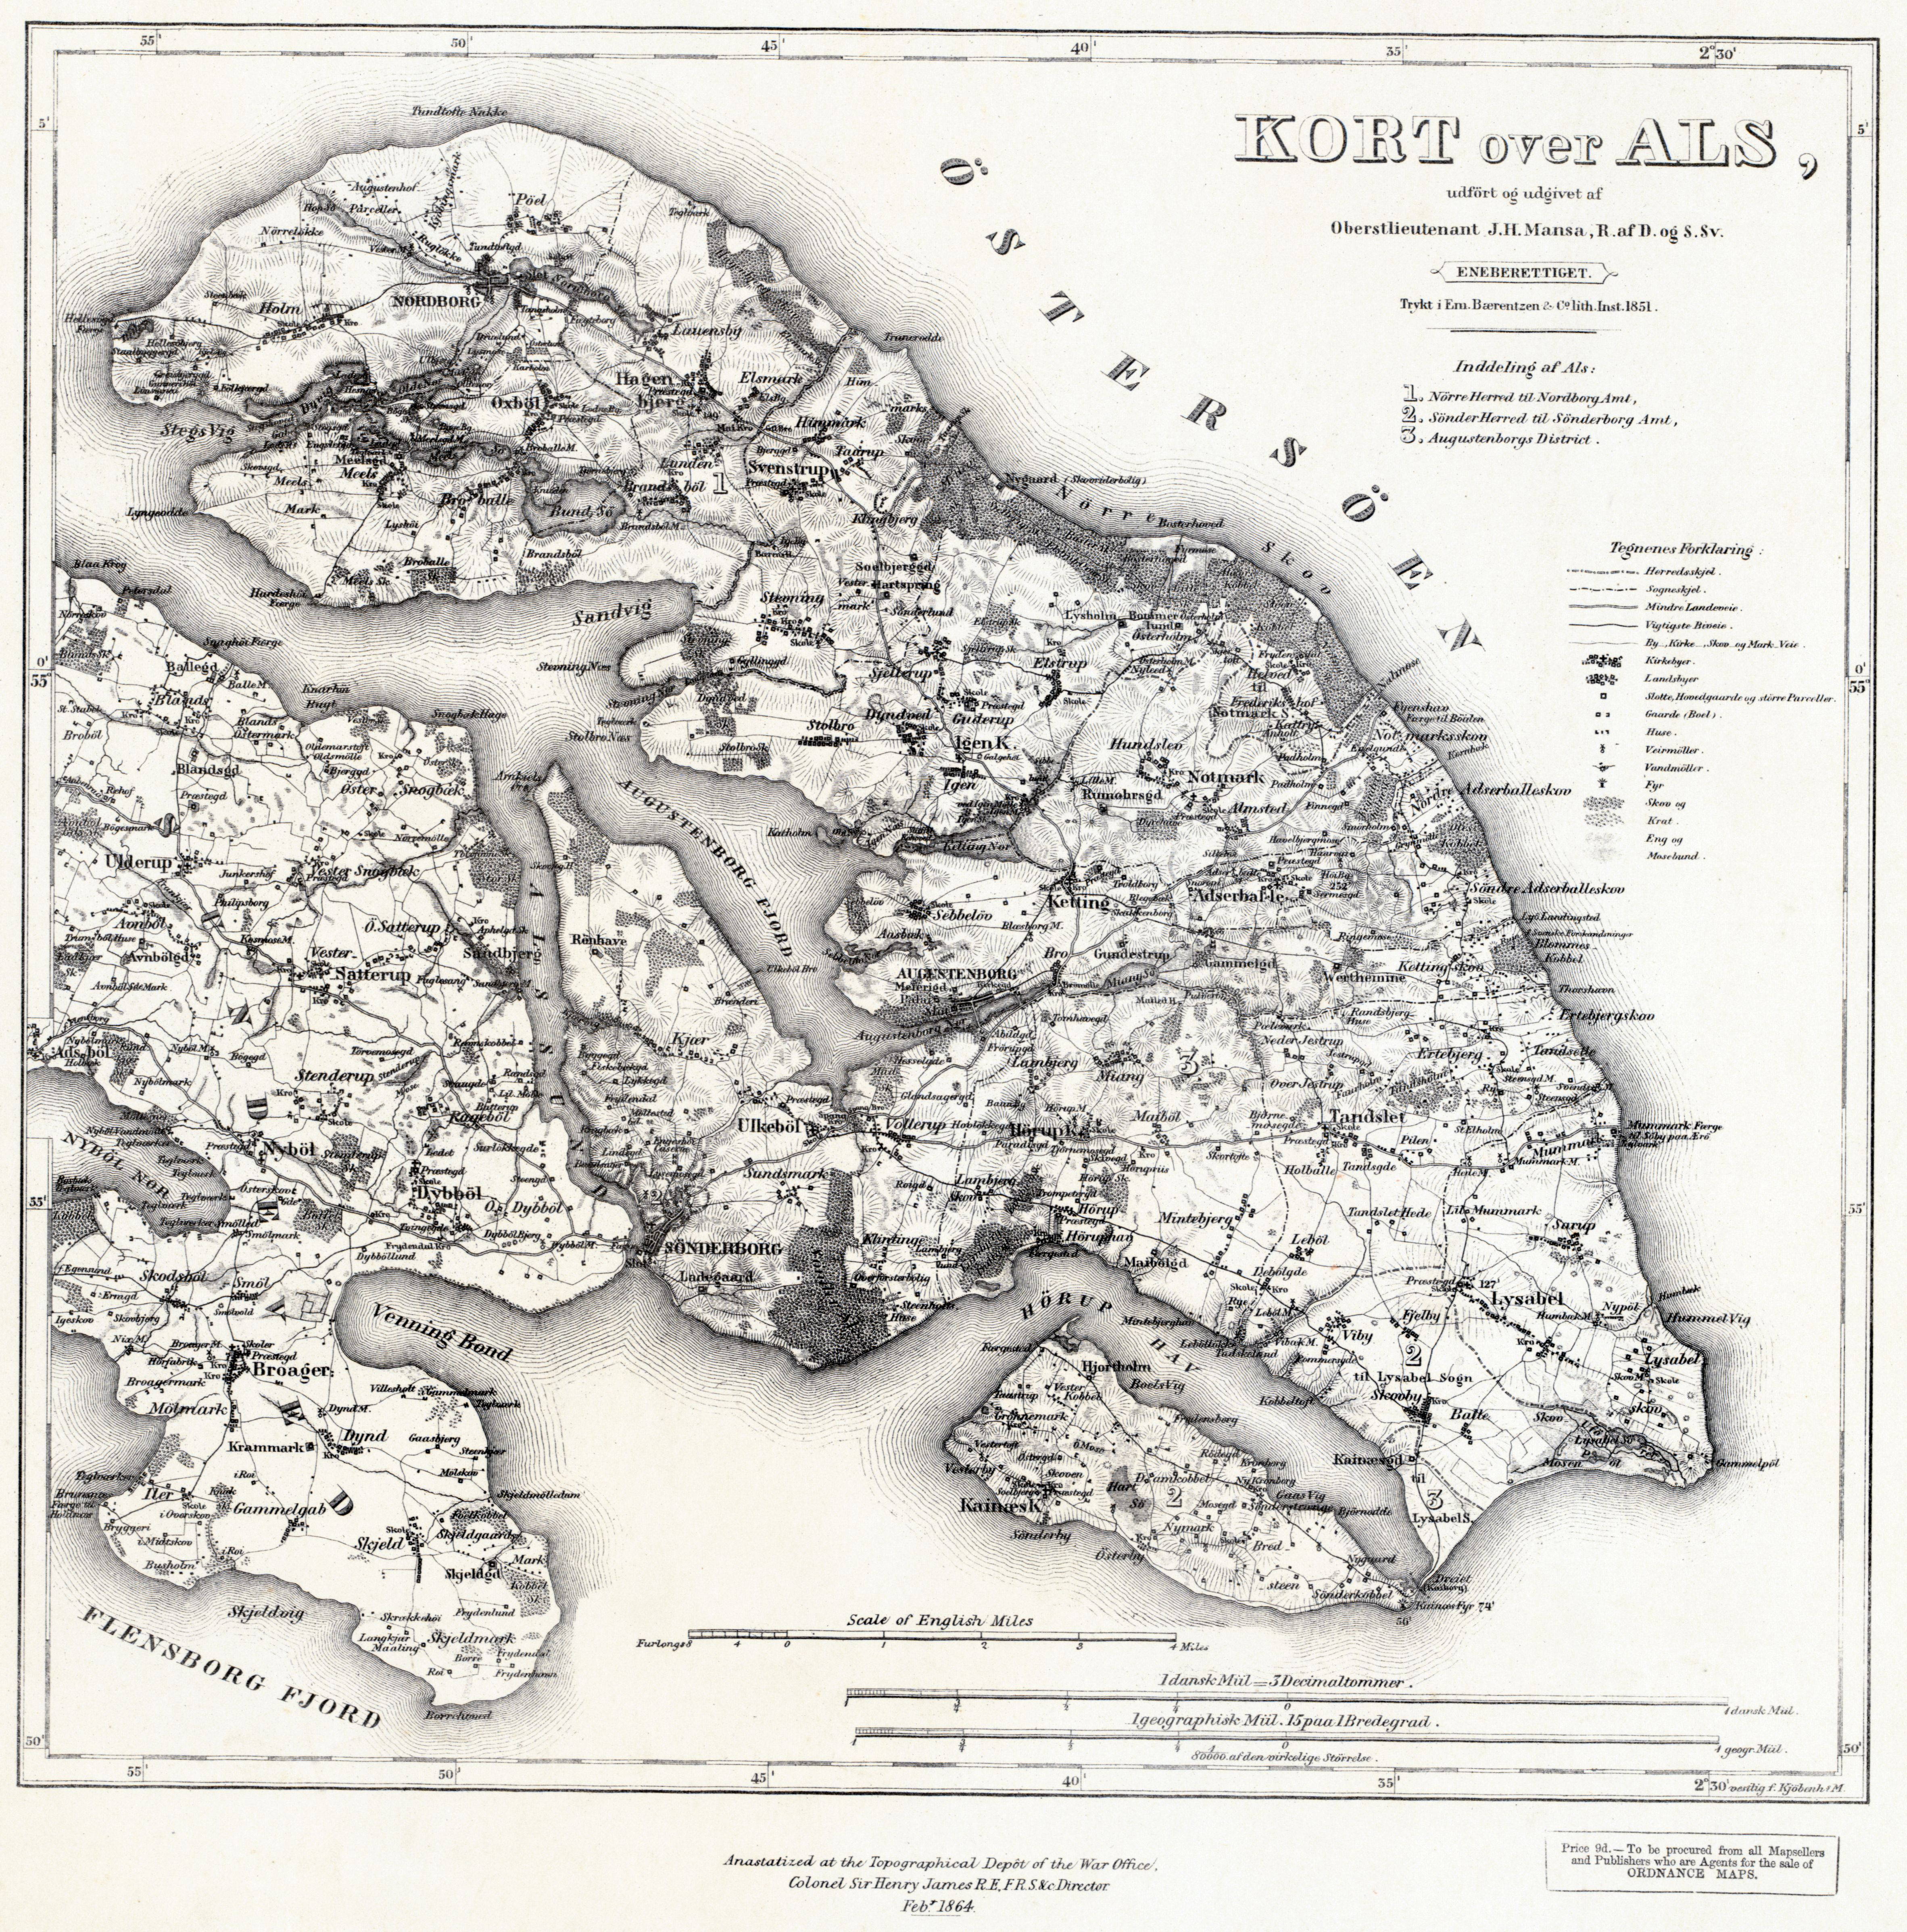 Military Map Of The Danish Island Of Als Drawn At The